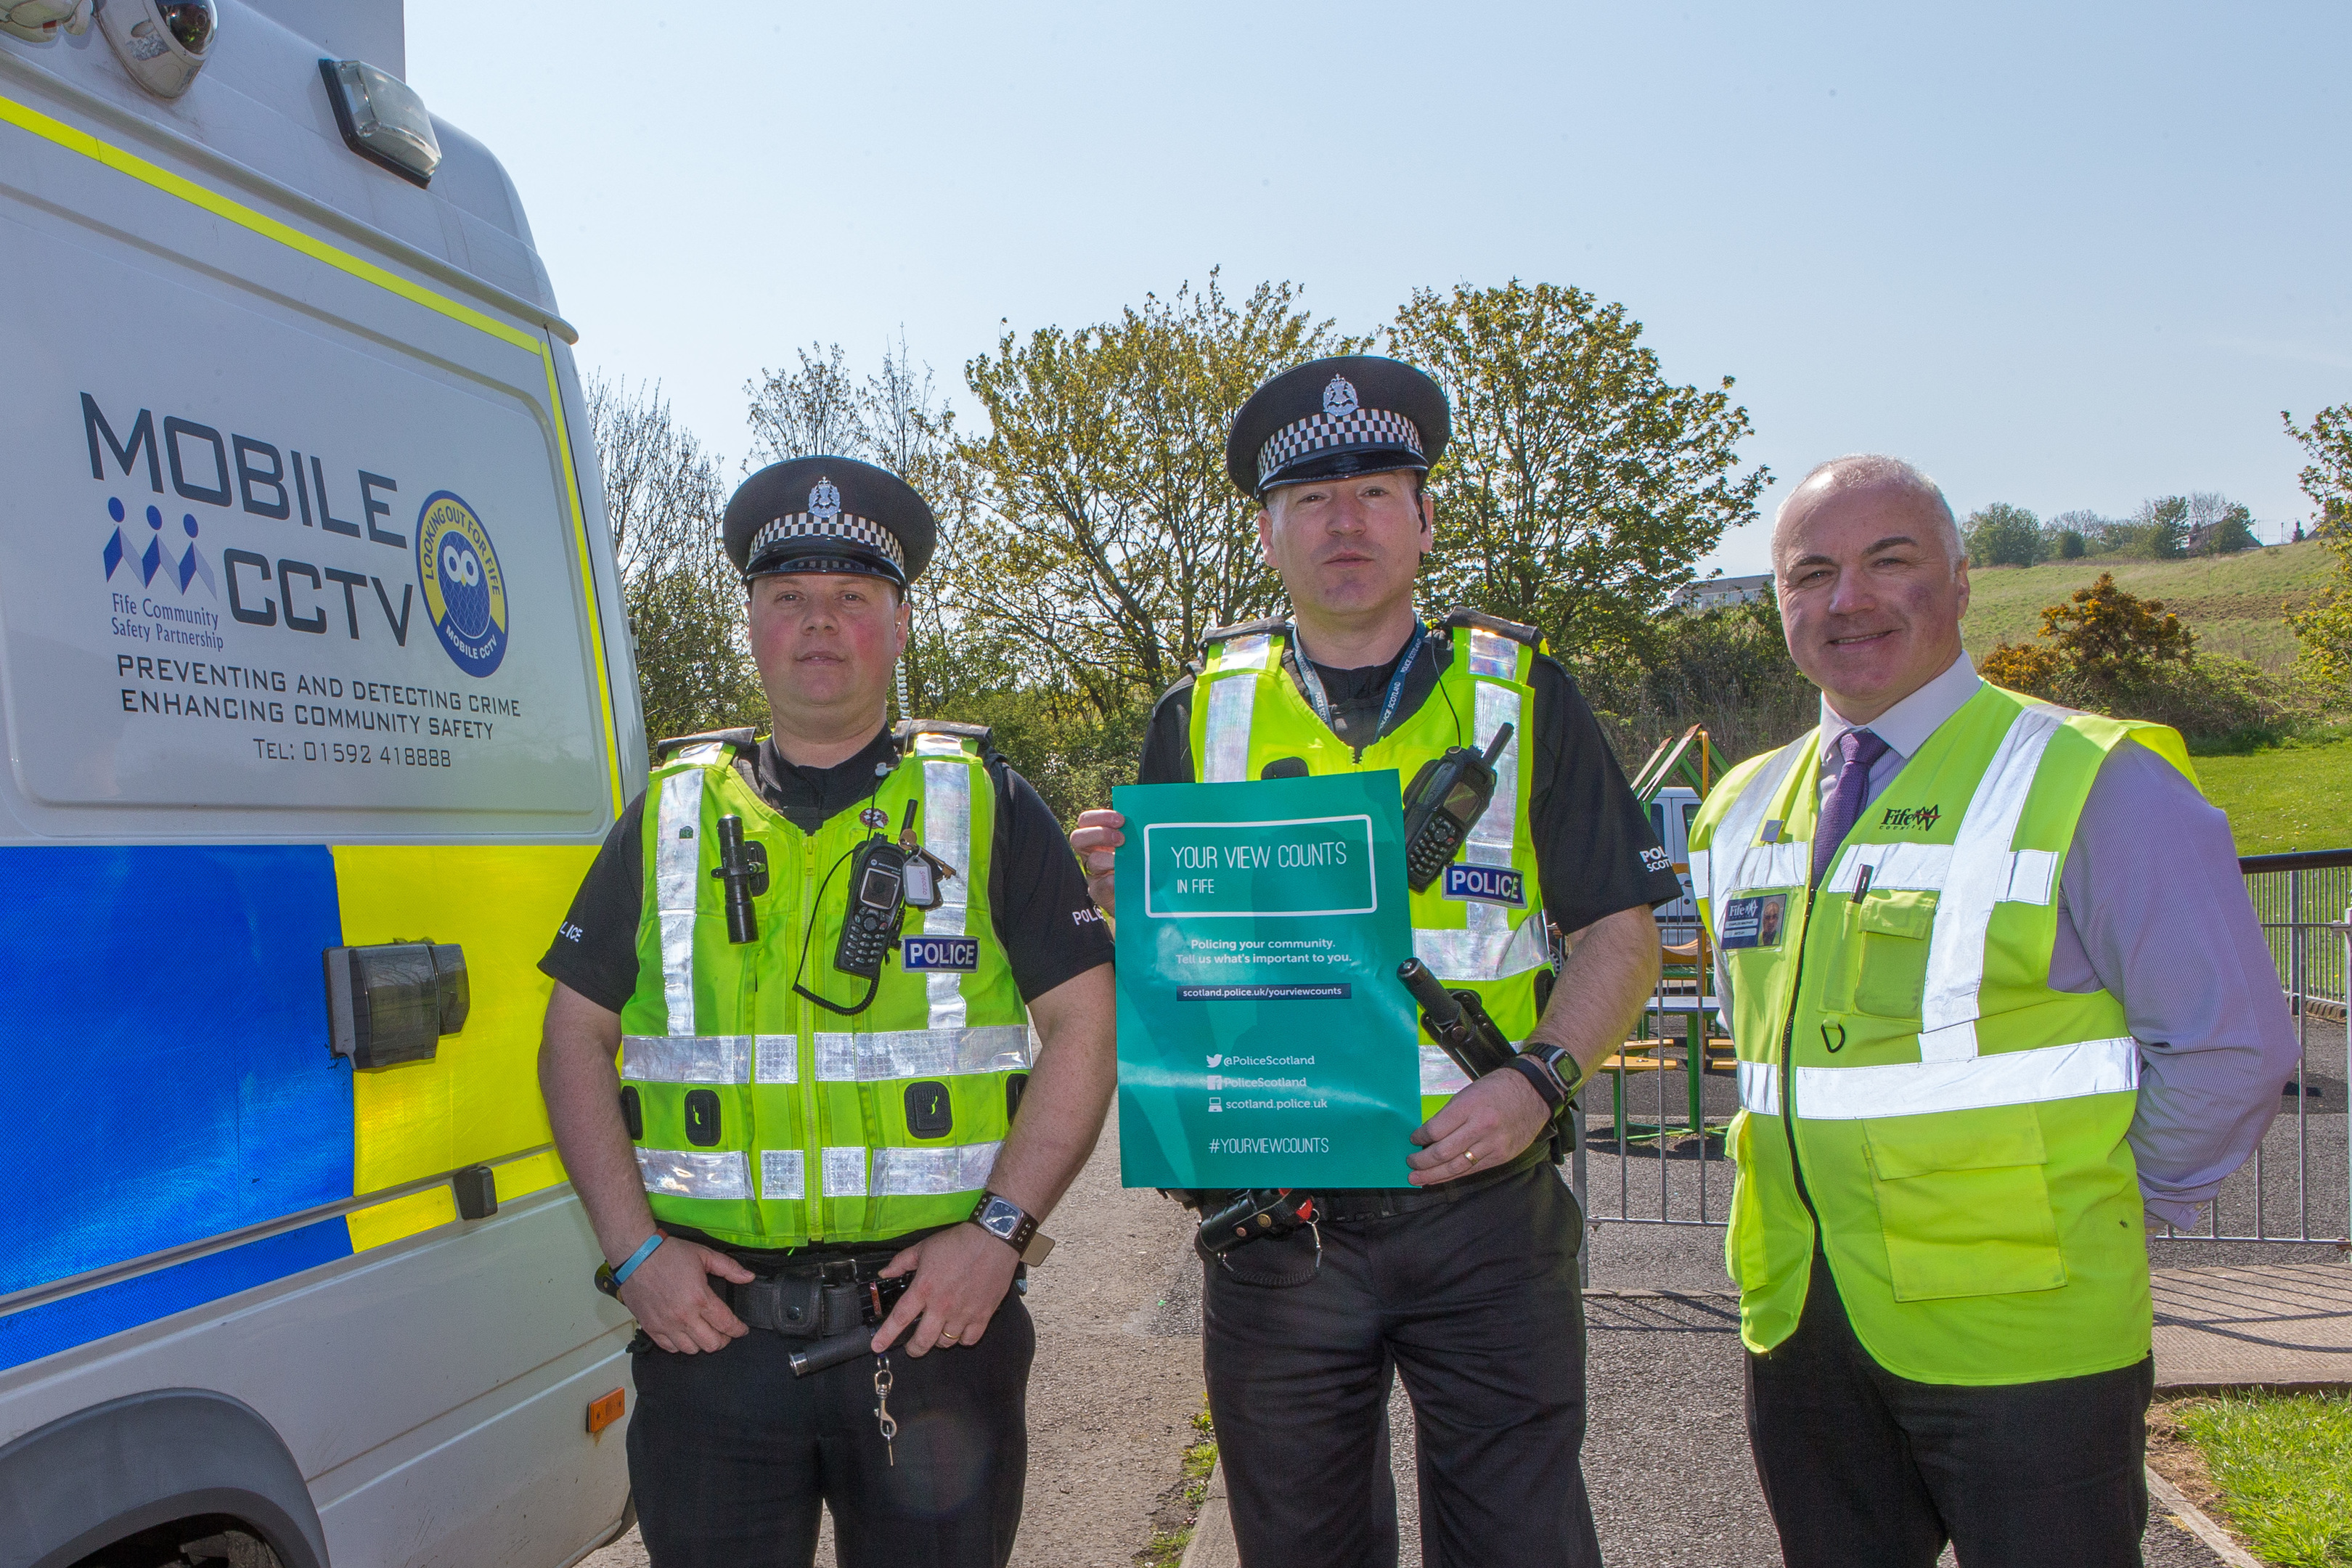 Fife authorities have been tackling the issue under Operation Fireblade